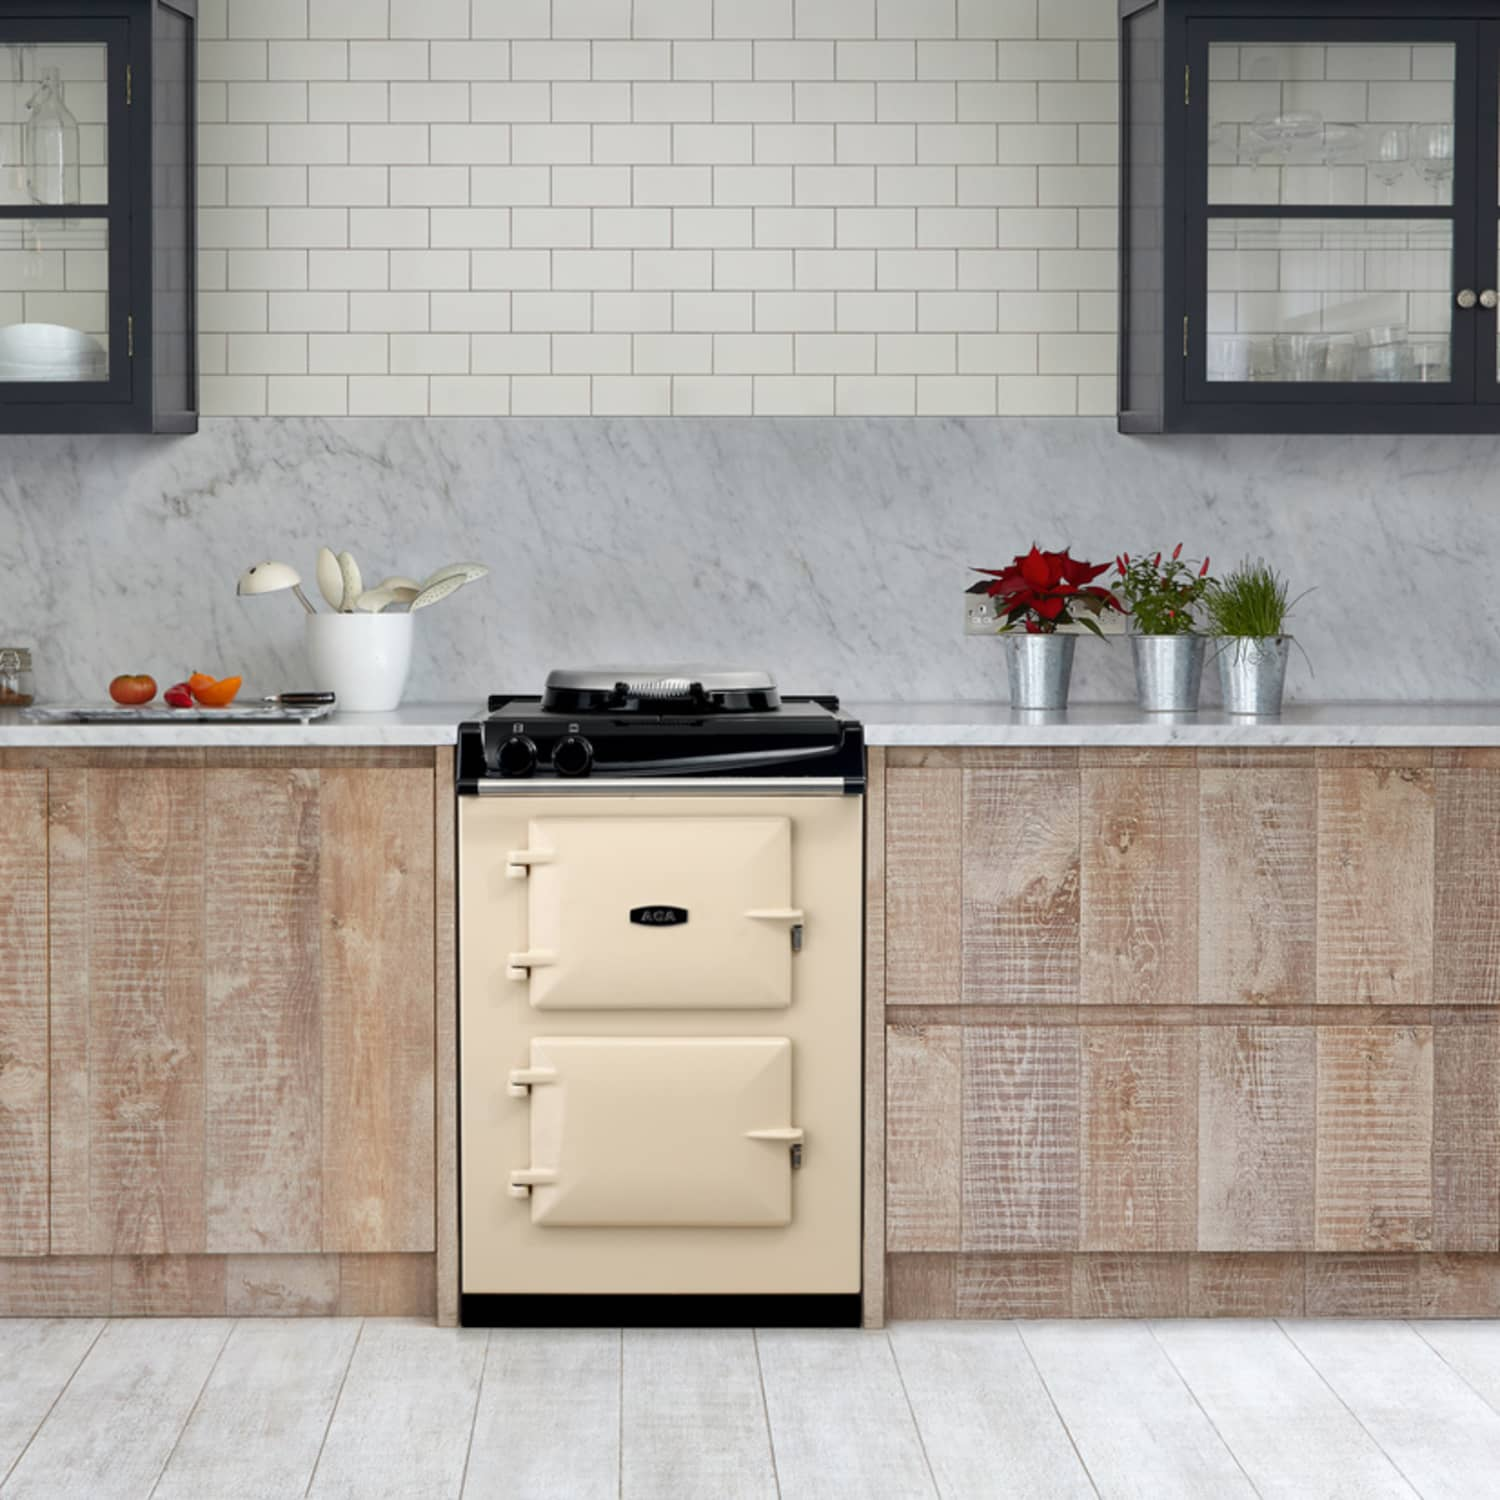 Well Designed Compact Appliances For Small Kitchens Apartment Therapy